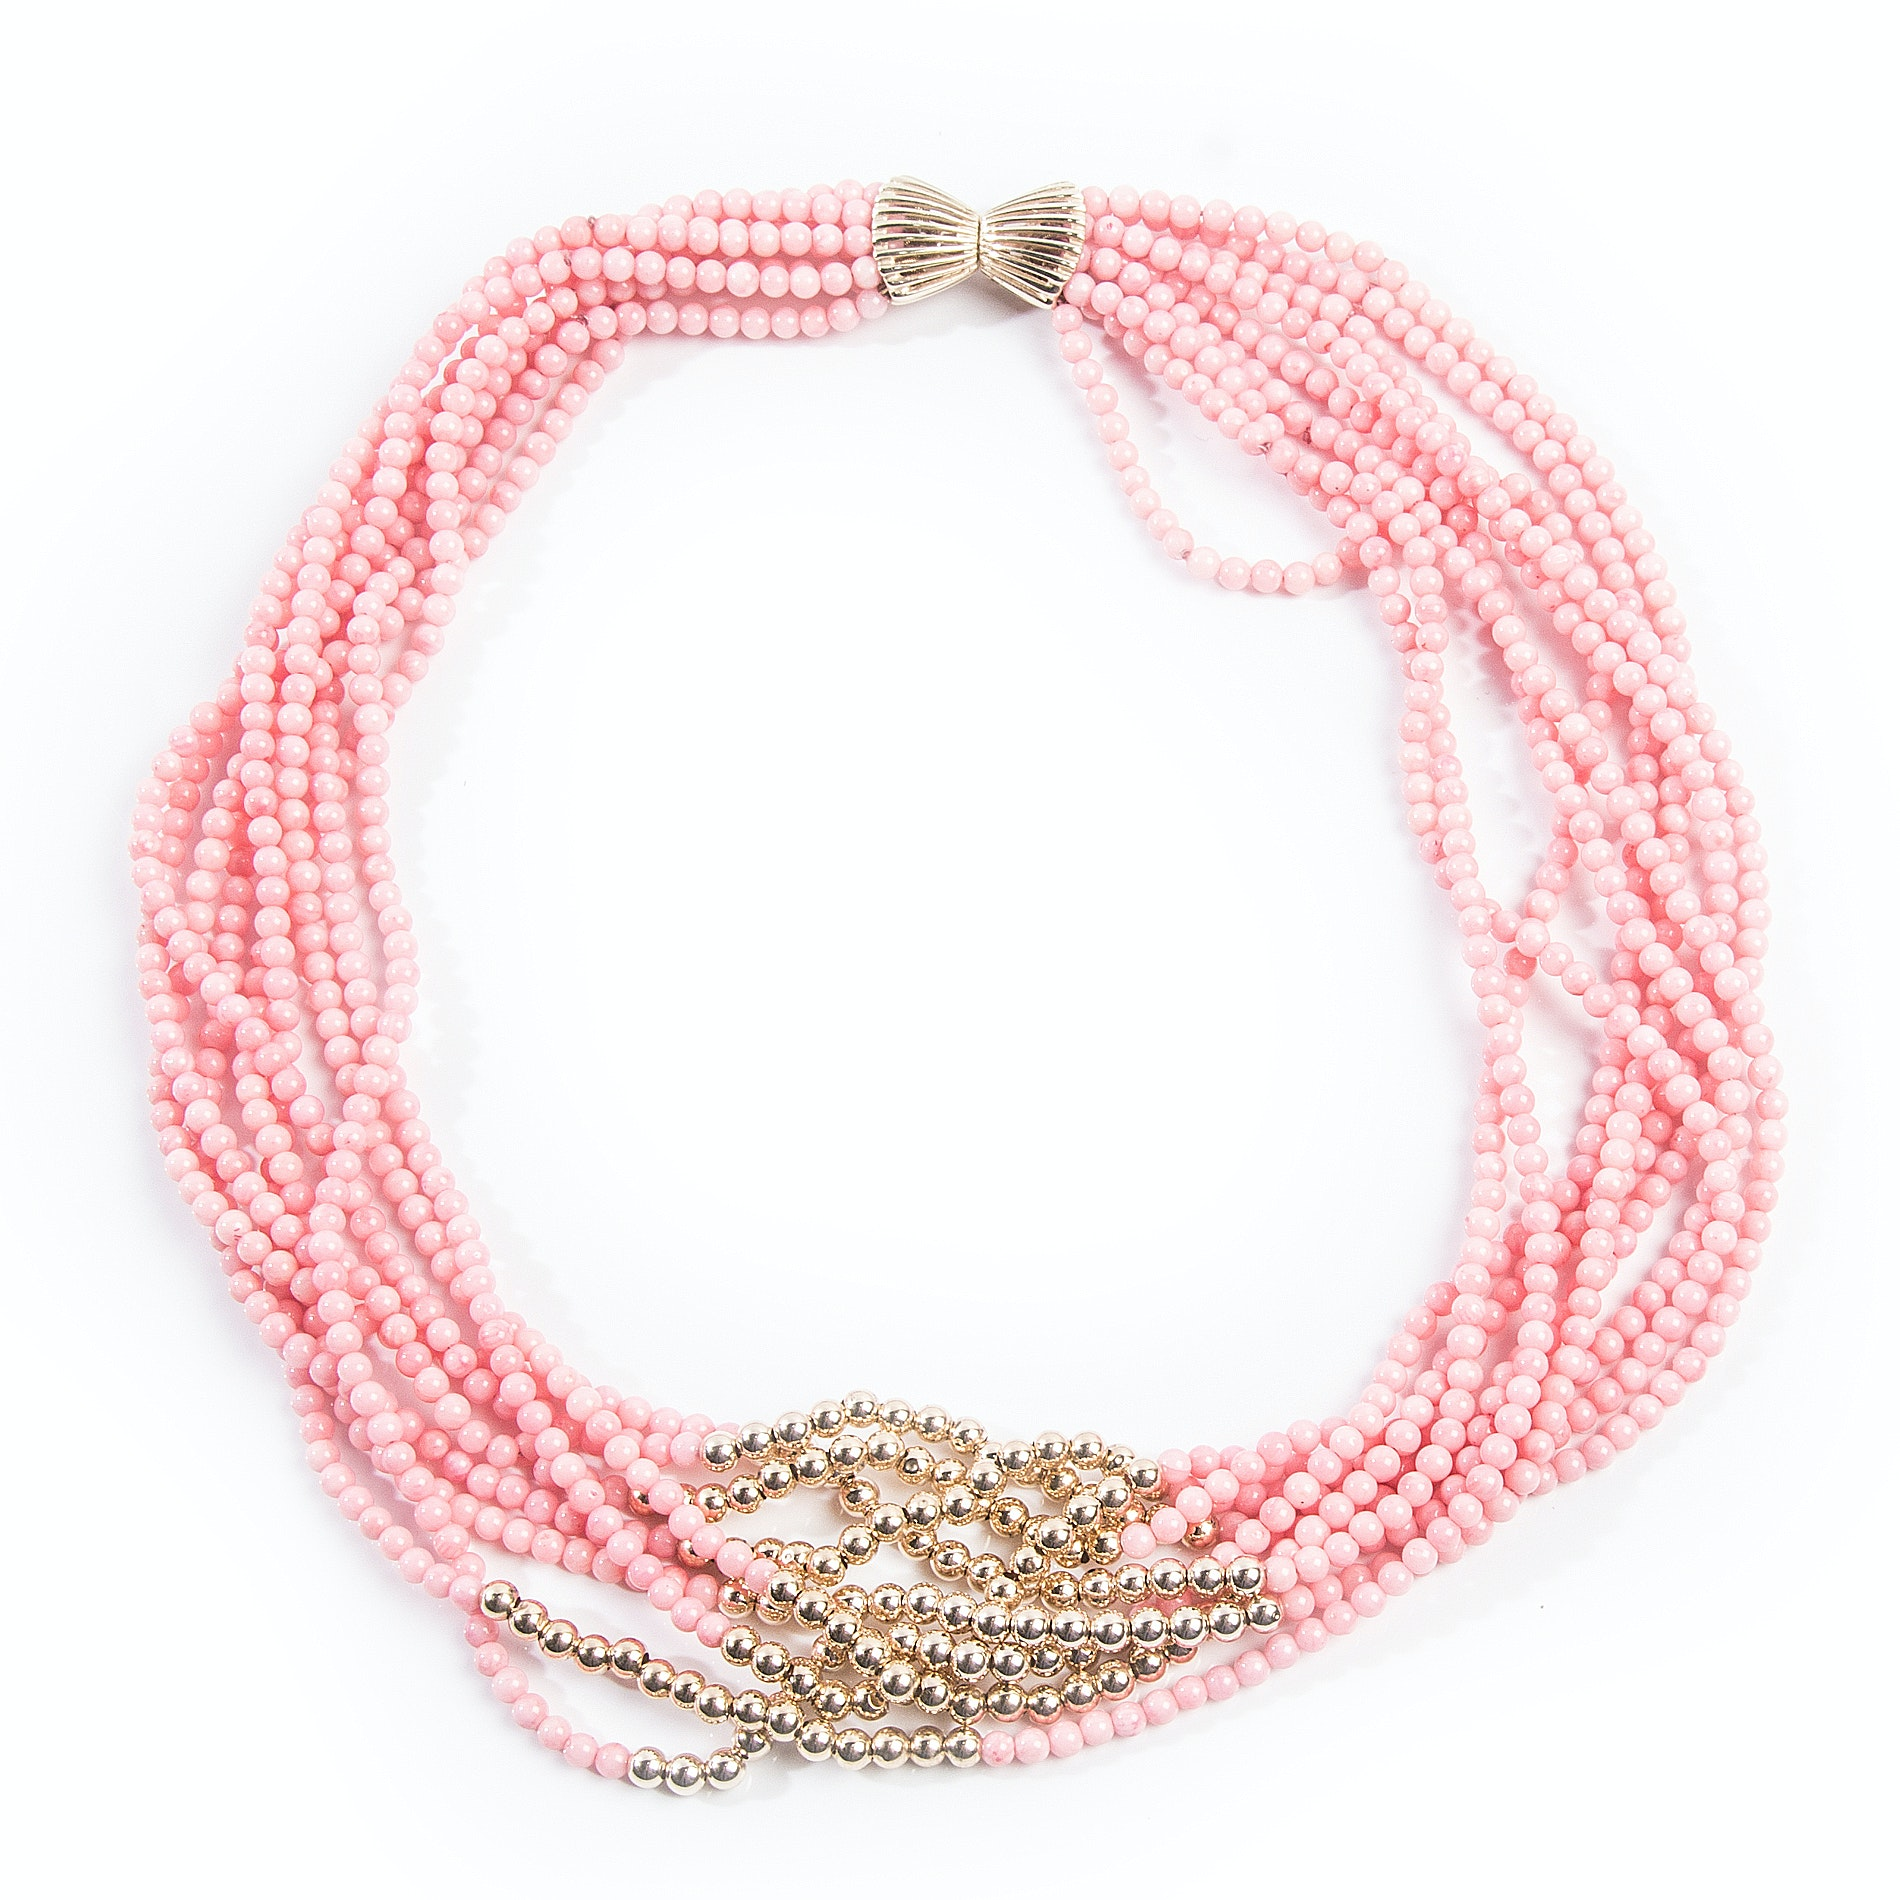 Nine Strand Coral and 14K Yellow Gold Bead Twisted Necklace